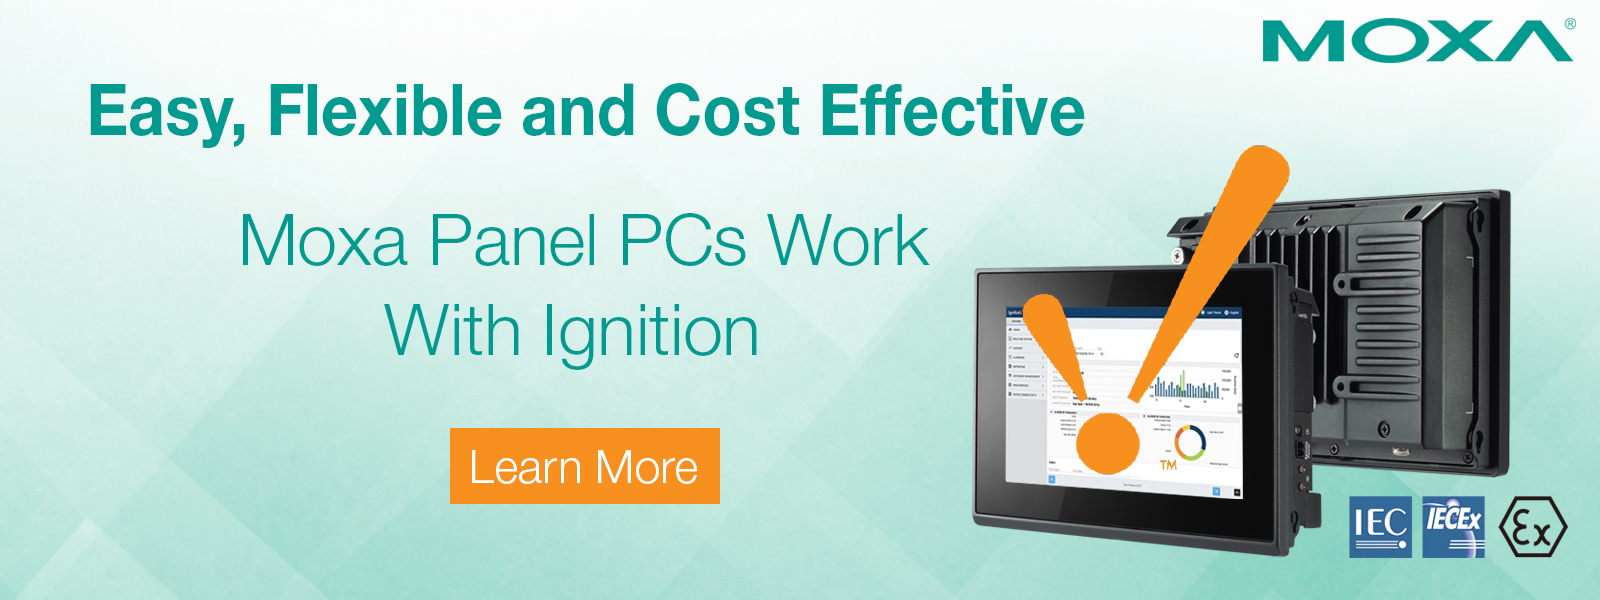 Easy Flexible and Cost Effective. Moxa panel PCs Work with ignition.